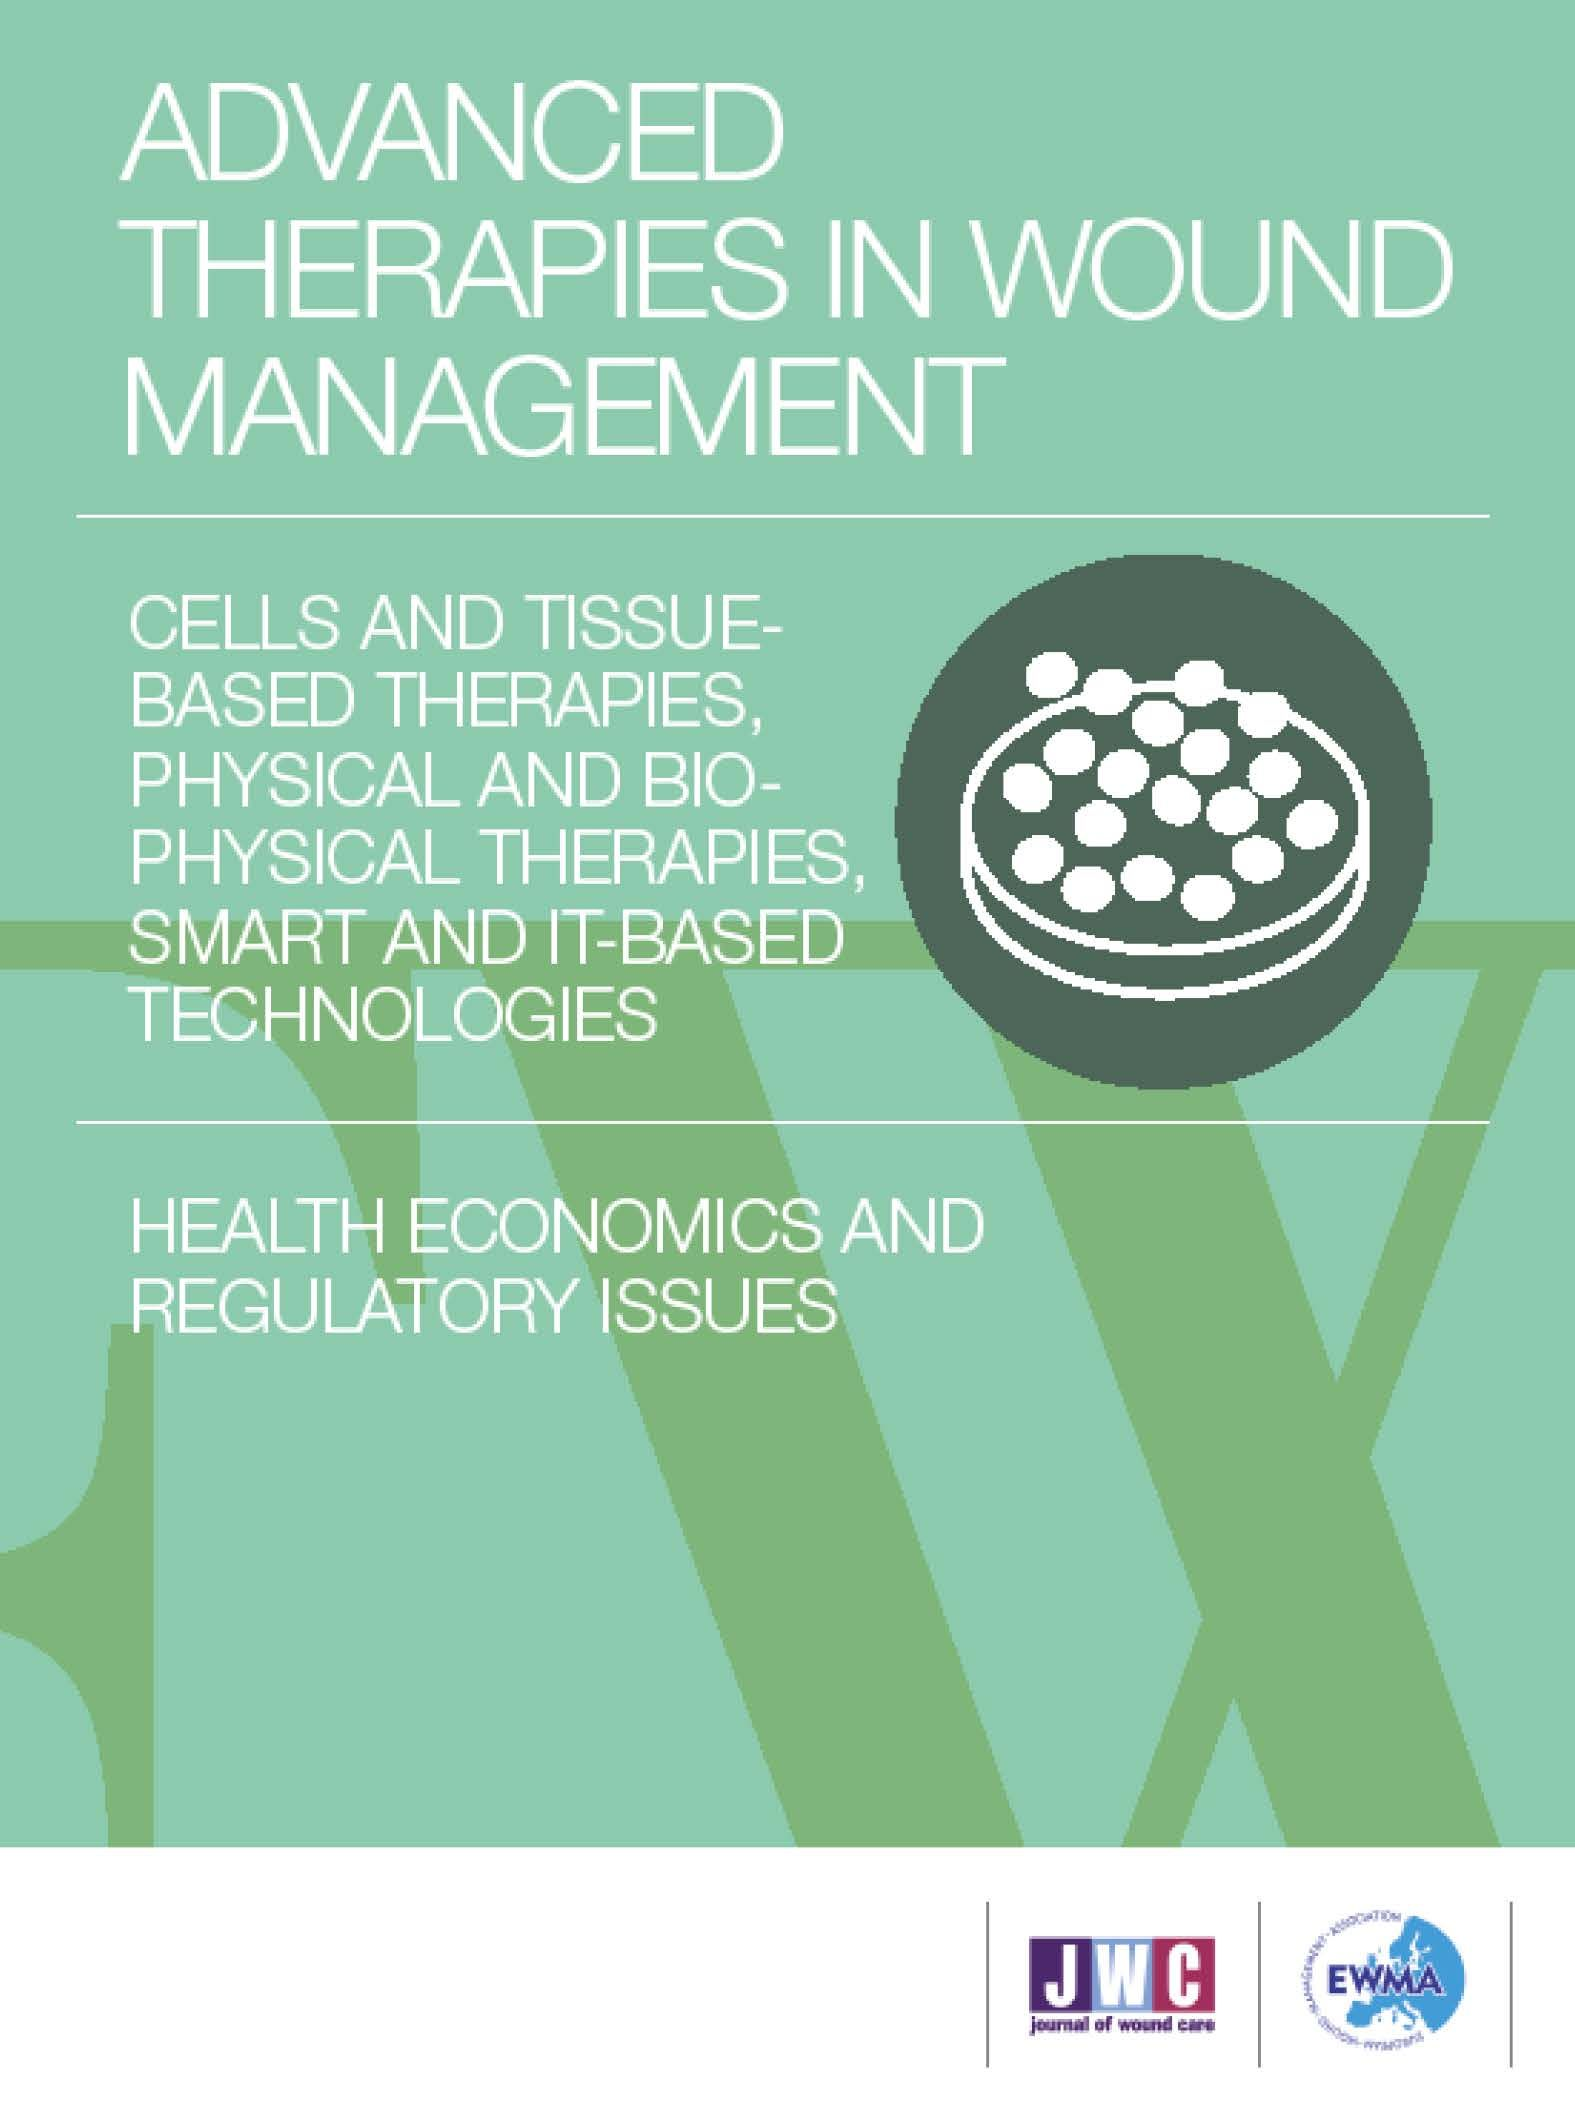 EWMA - Advanced Therapies in Wound Management